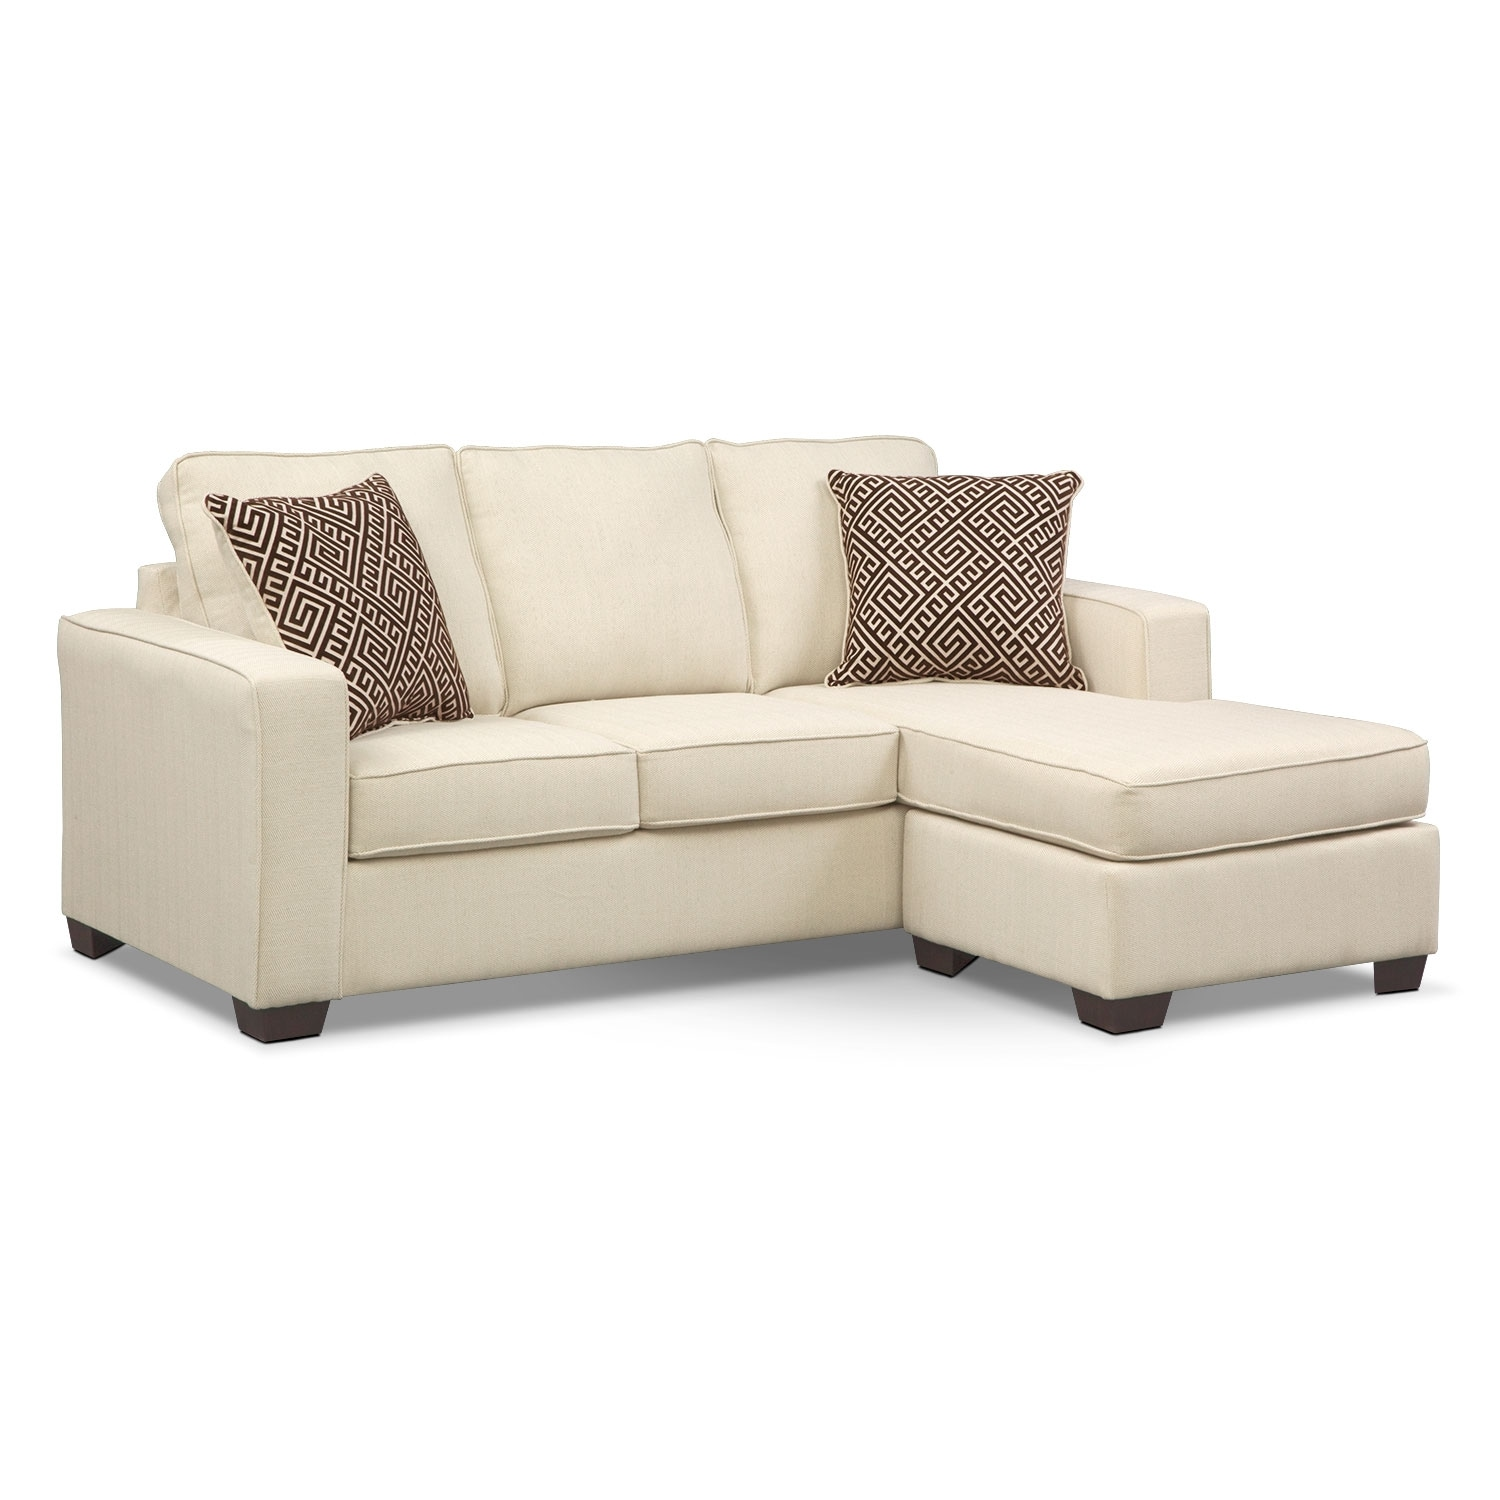 Sterling Memory Foam Sleeper Sofa With Chaise Beige